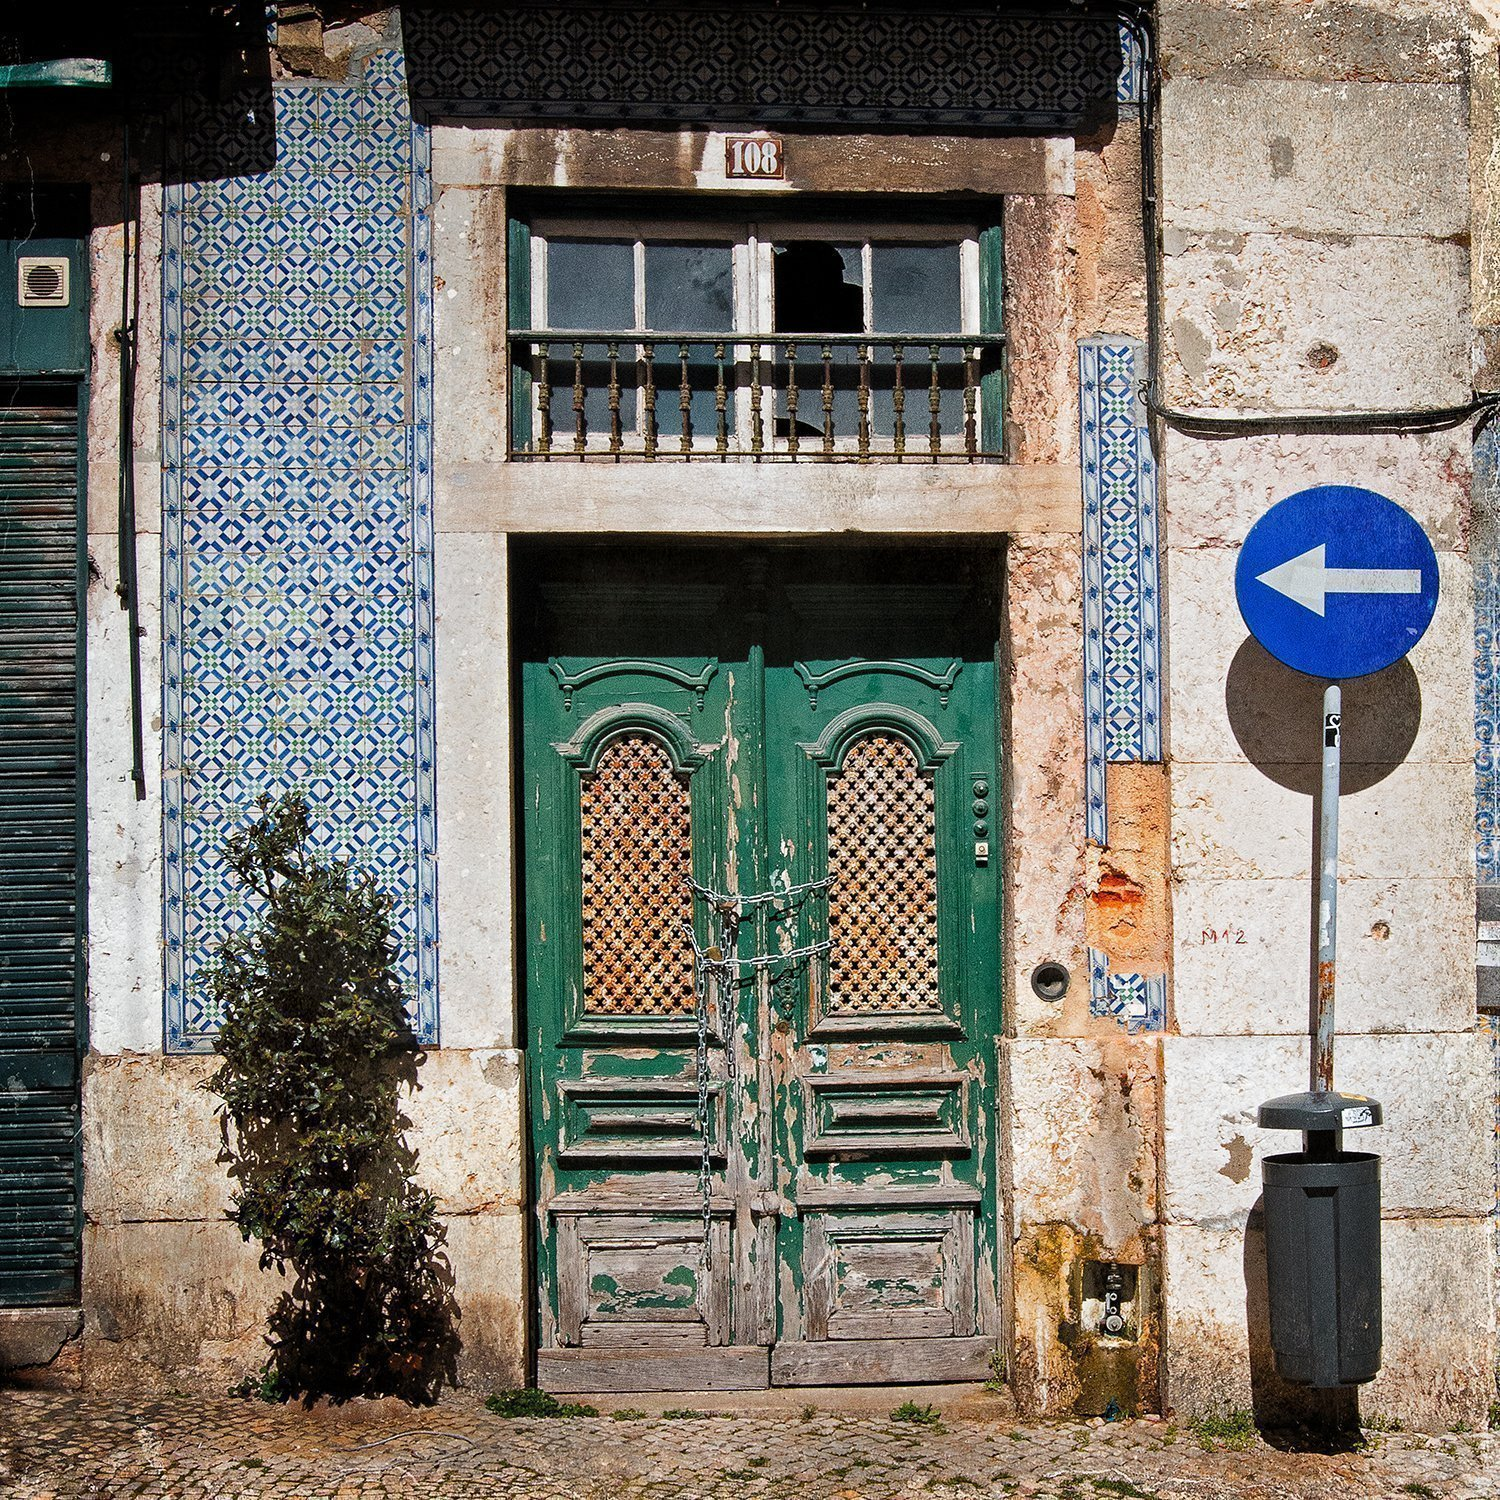 Postcard-sized flash fiction about the things we think we know, old doors and life and everything in between. And it all starts with an image...